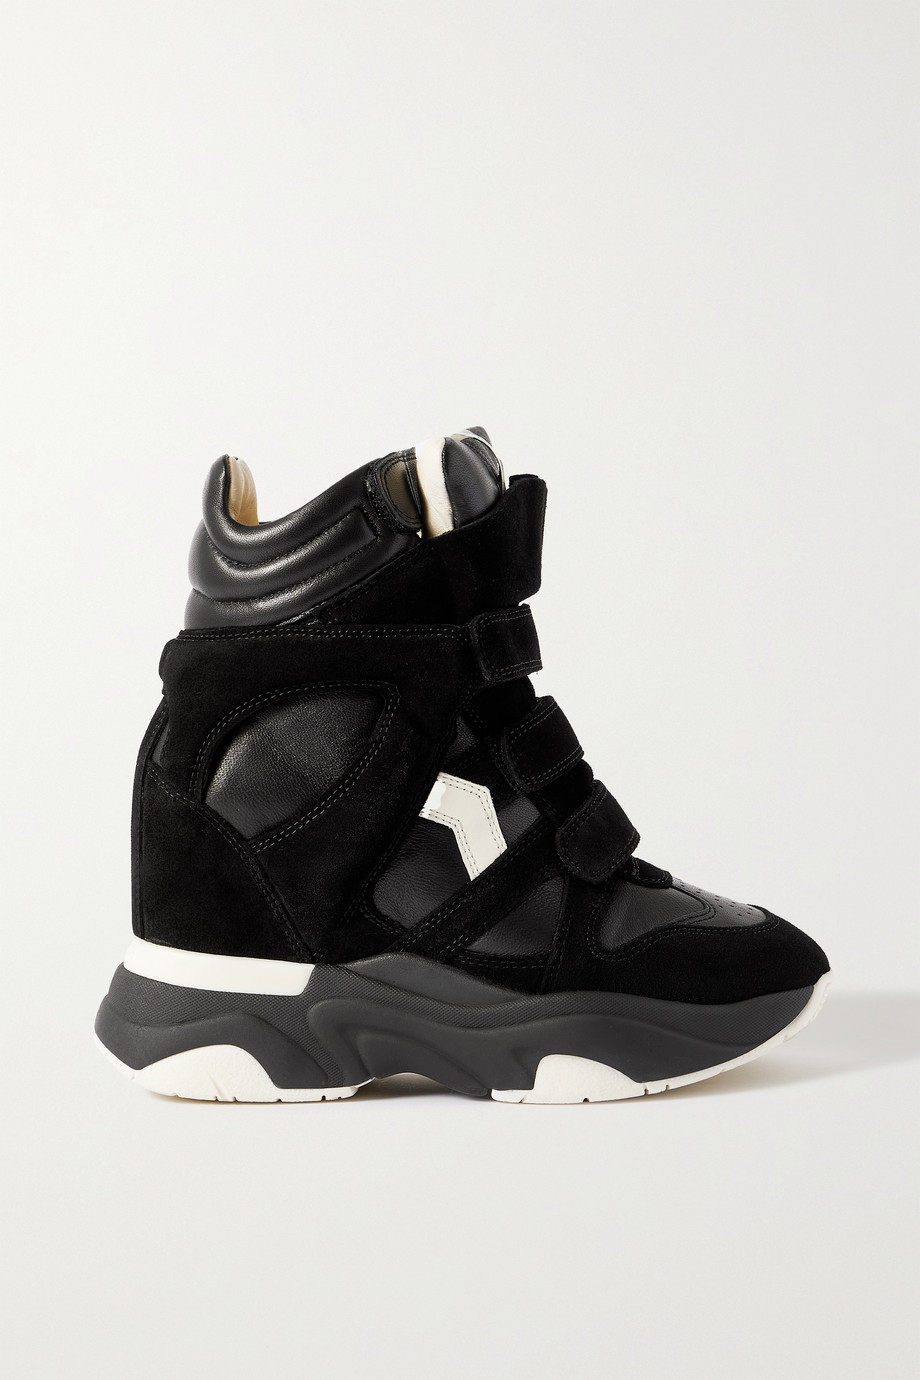 Isabel Marant Baskee leather and suede high-top wedge sneakers